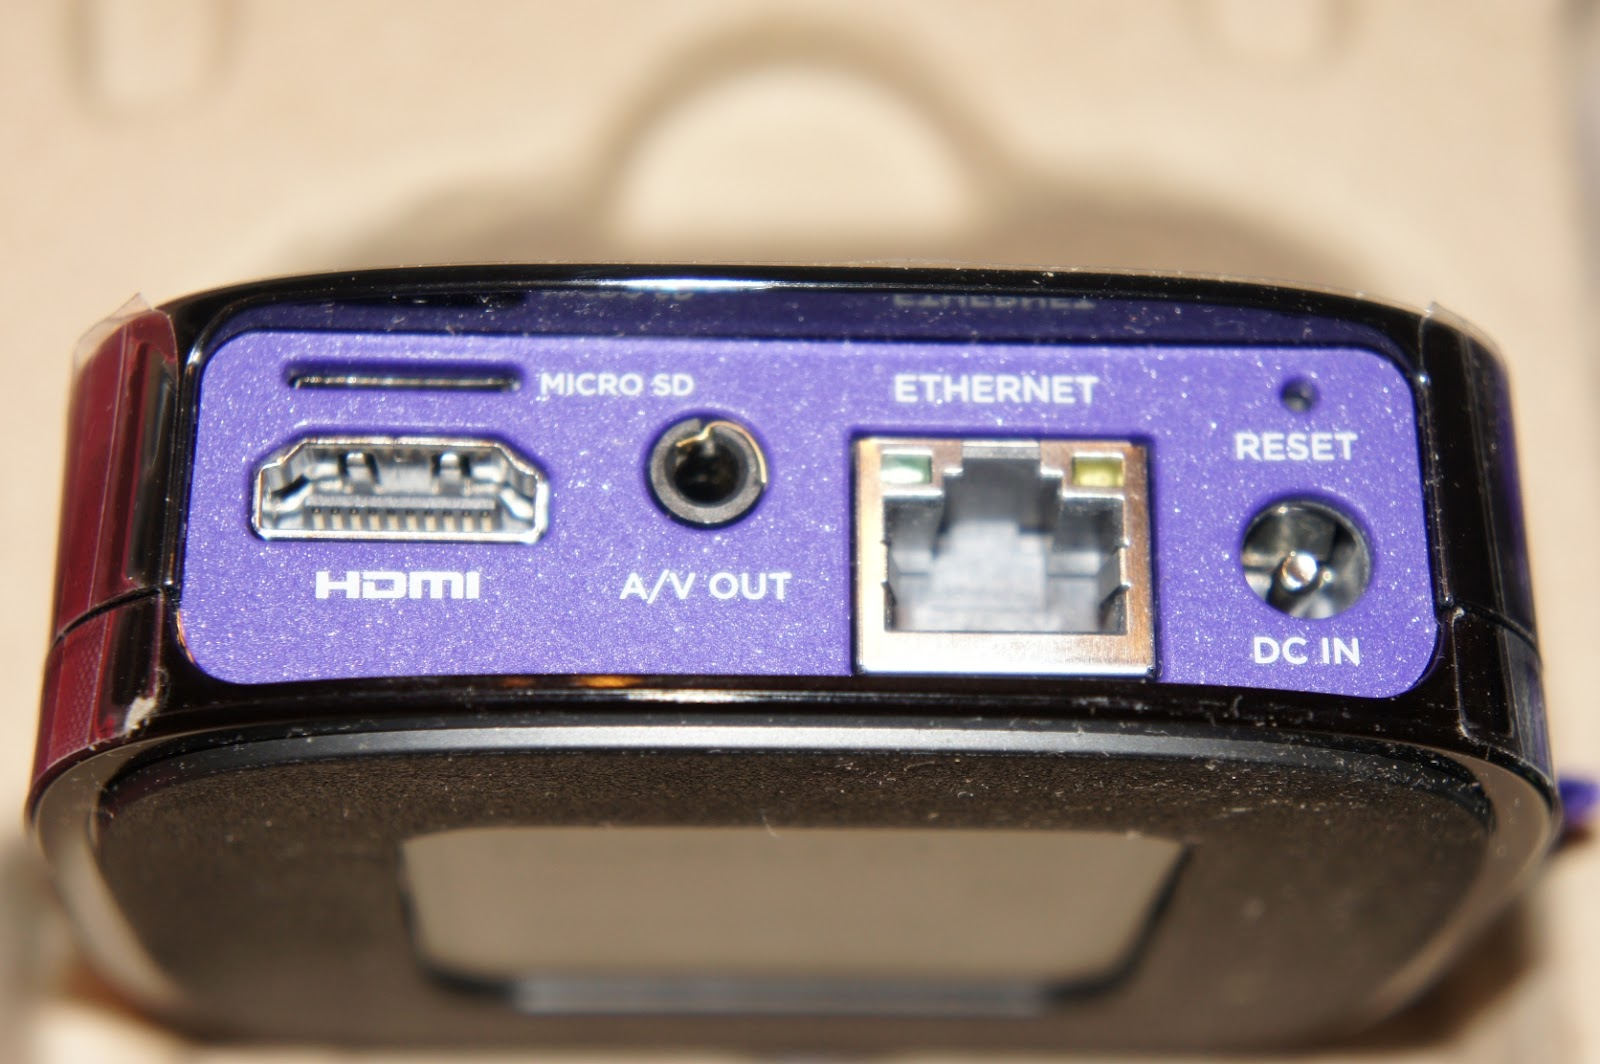 Twins N Tidbits: Saving money on TV - Roku install with ... - photo#38